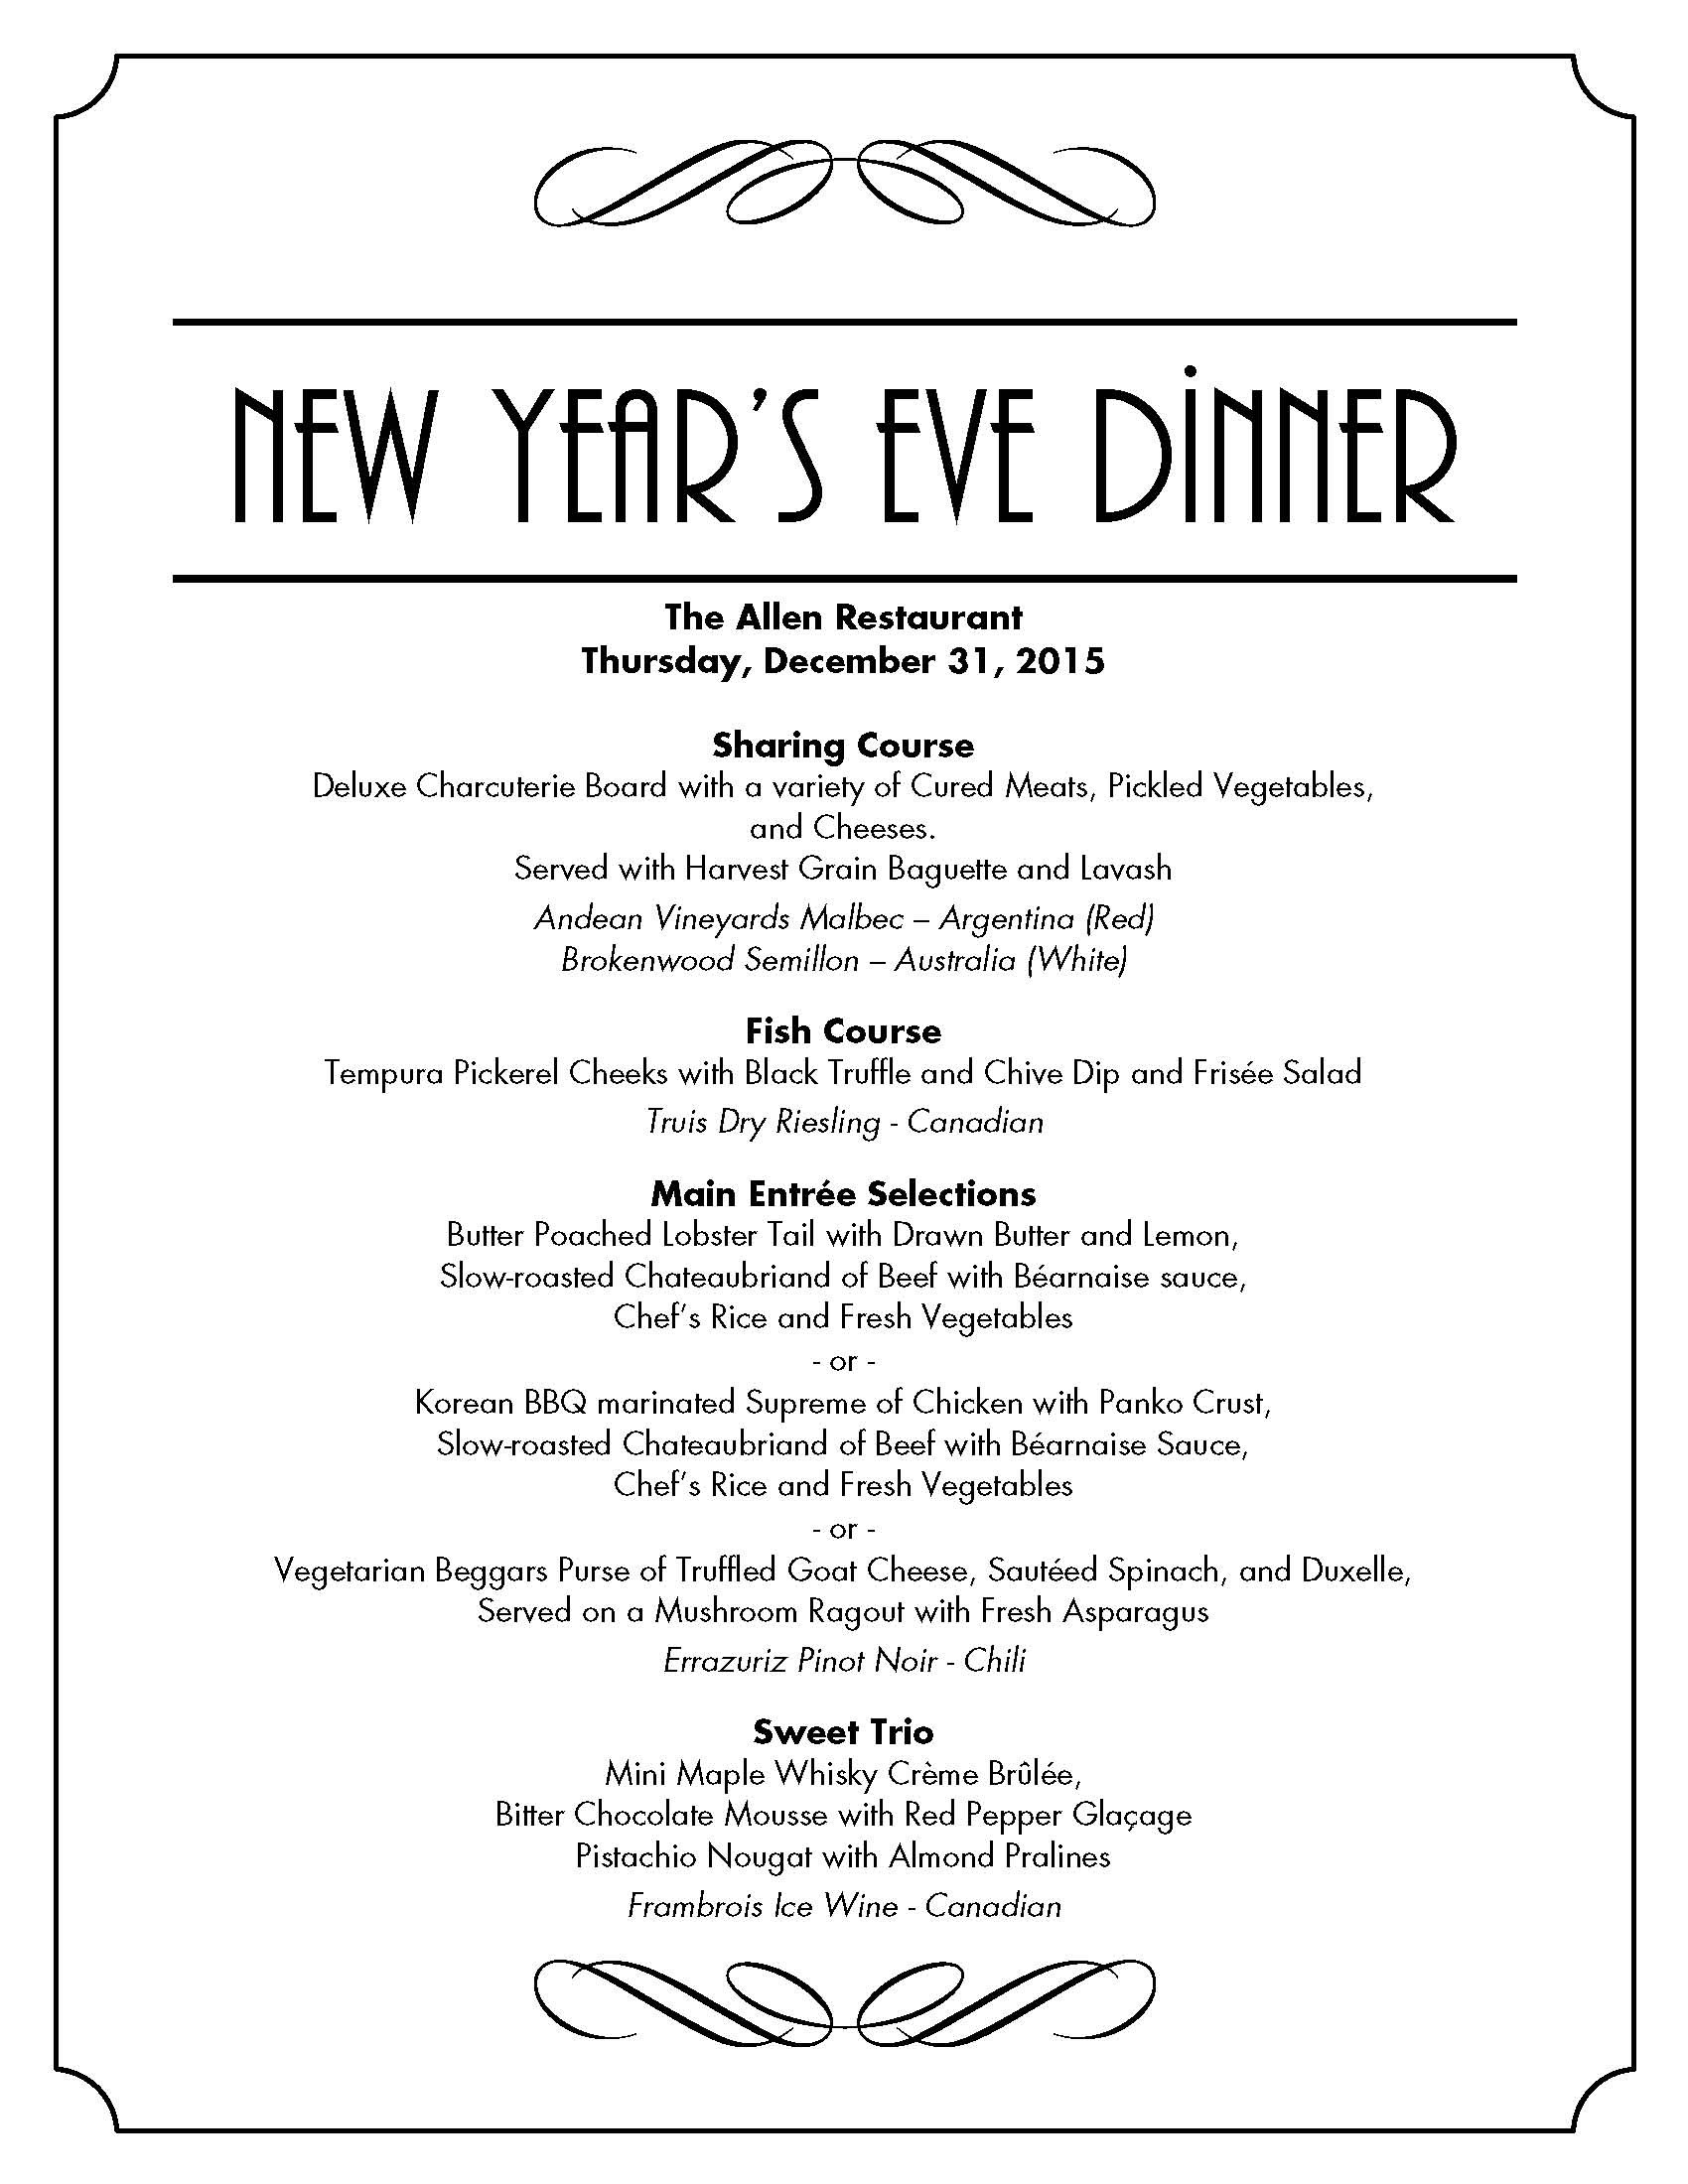 New Year Day Dinner Menu  New Years Eve Dinner at The Allen Restaurant